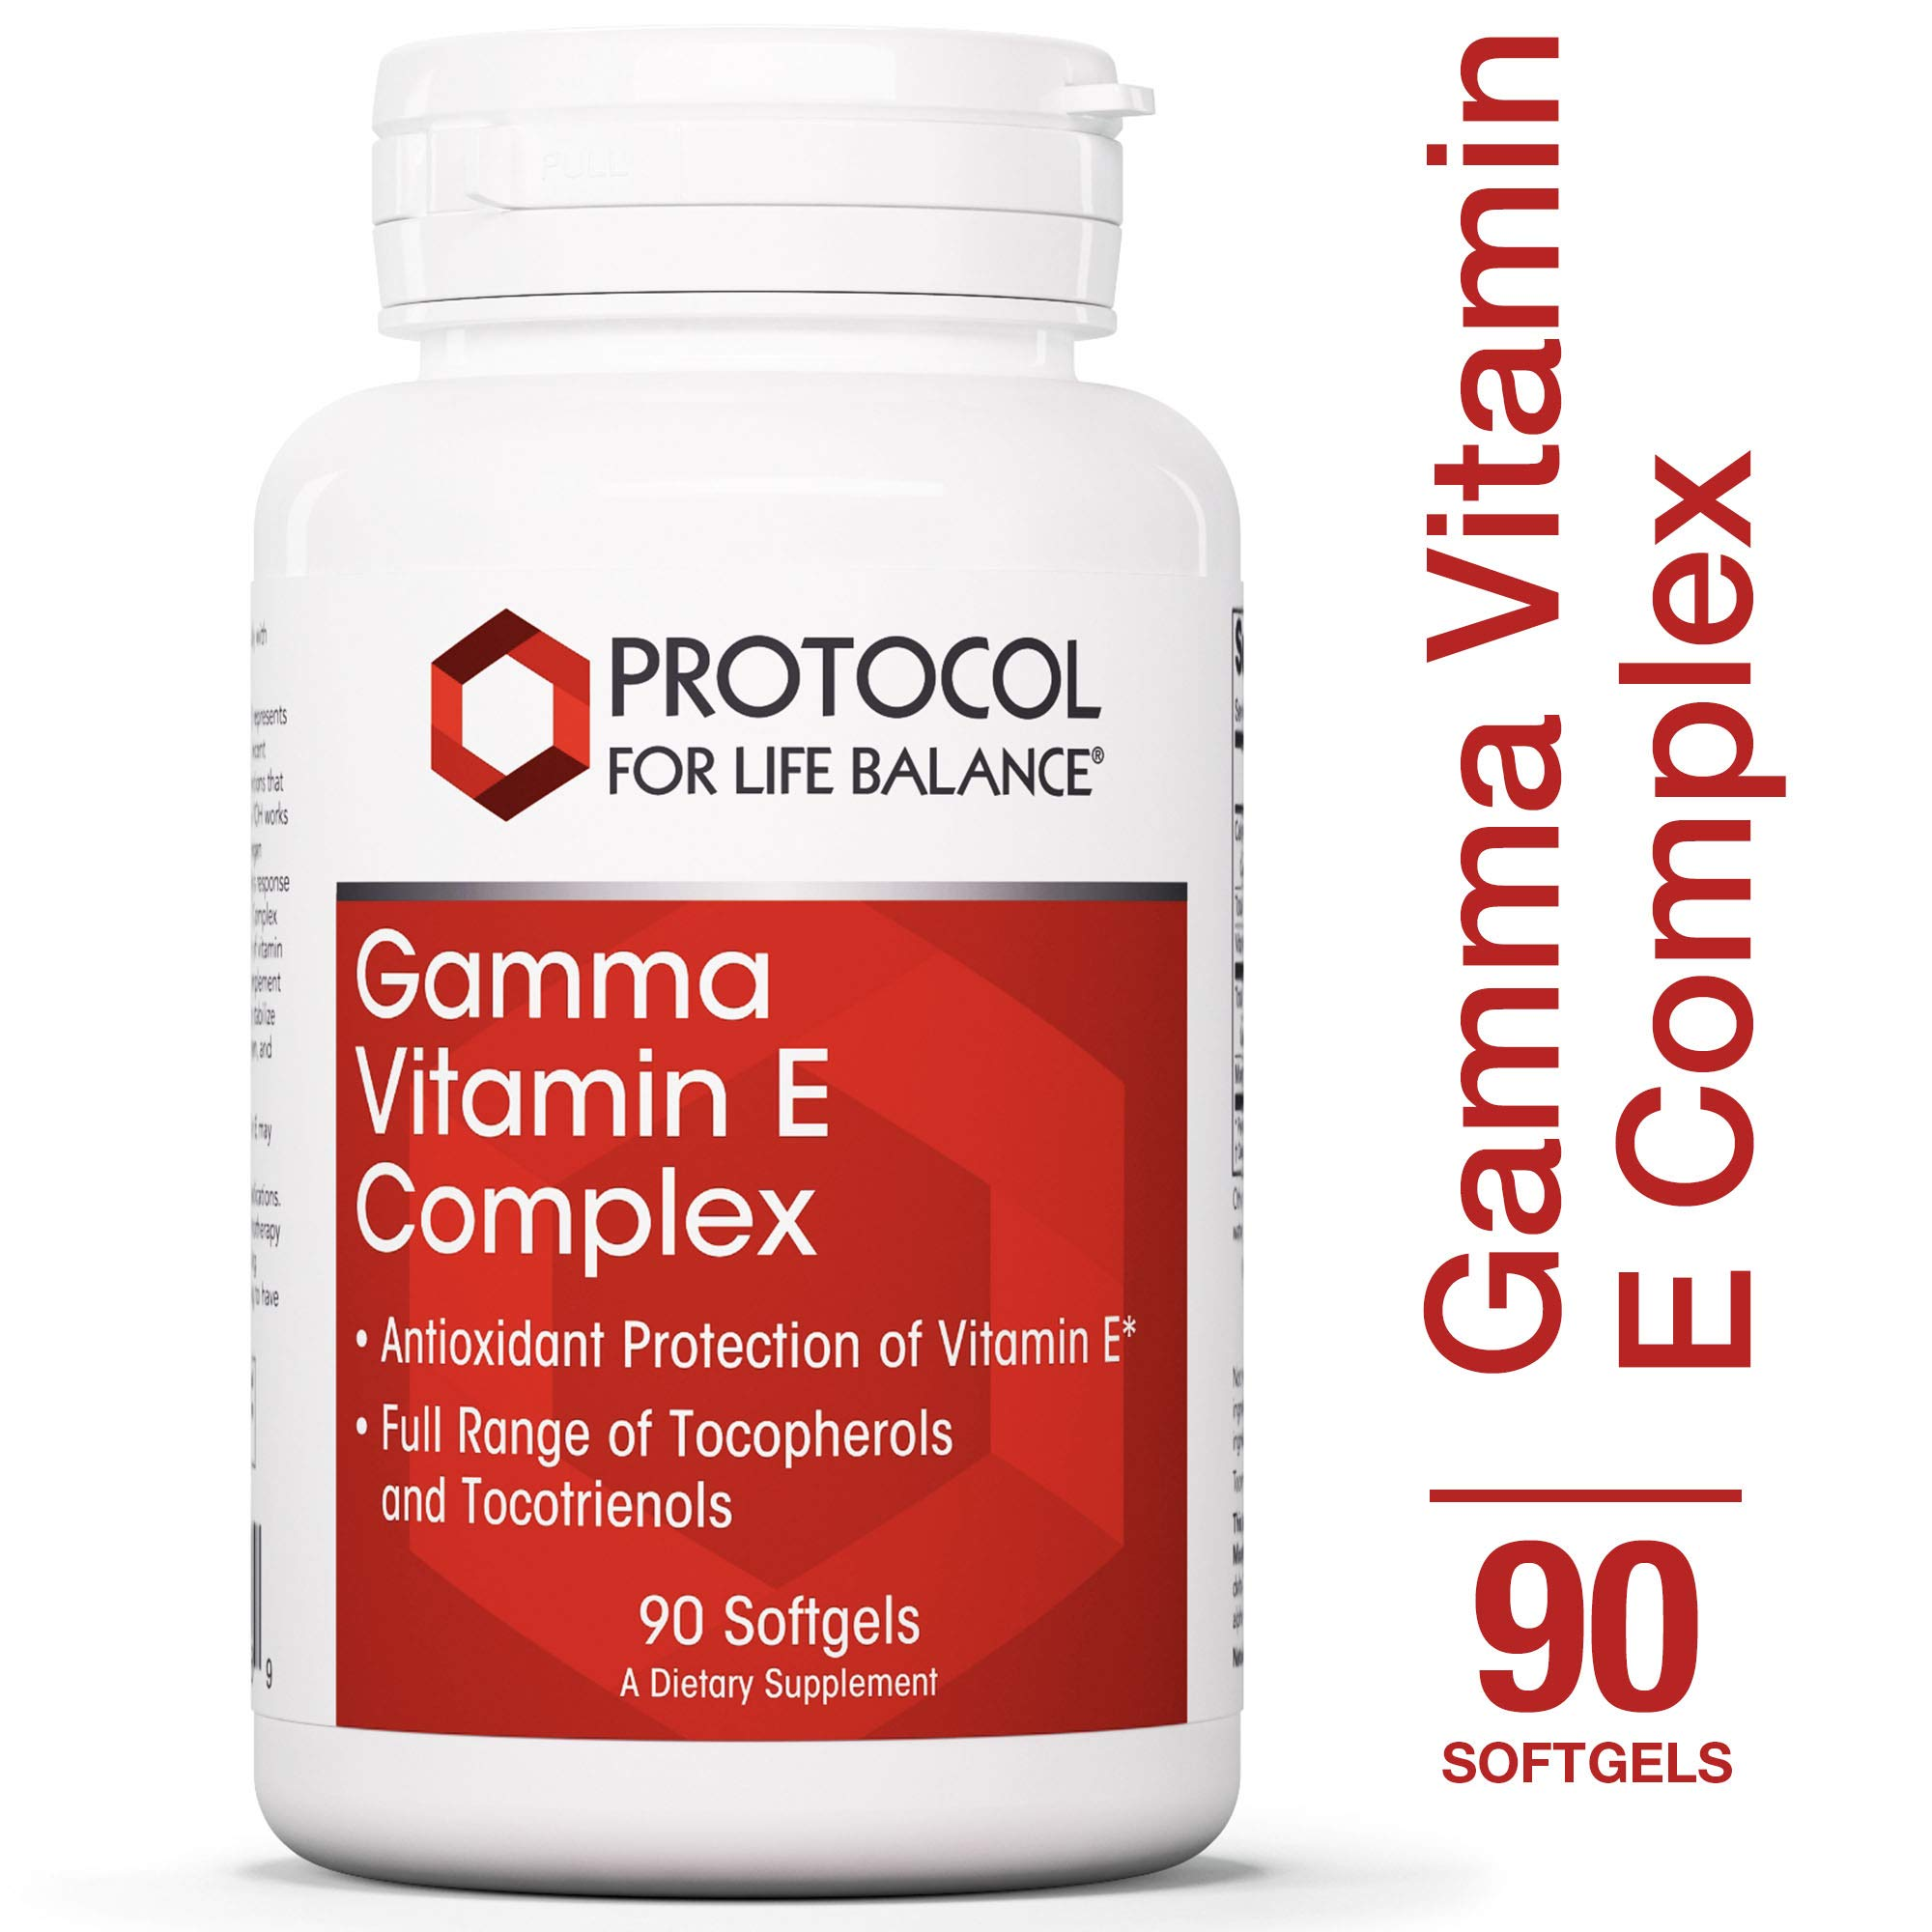 Protocol For Life Balance - Gamma Vitamin E Complex - Antioxidant Protection Supporting Immune Systems & Physical Endurance - 90 Softgels